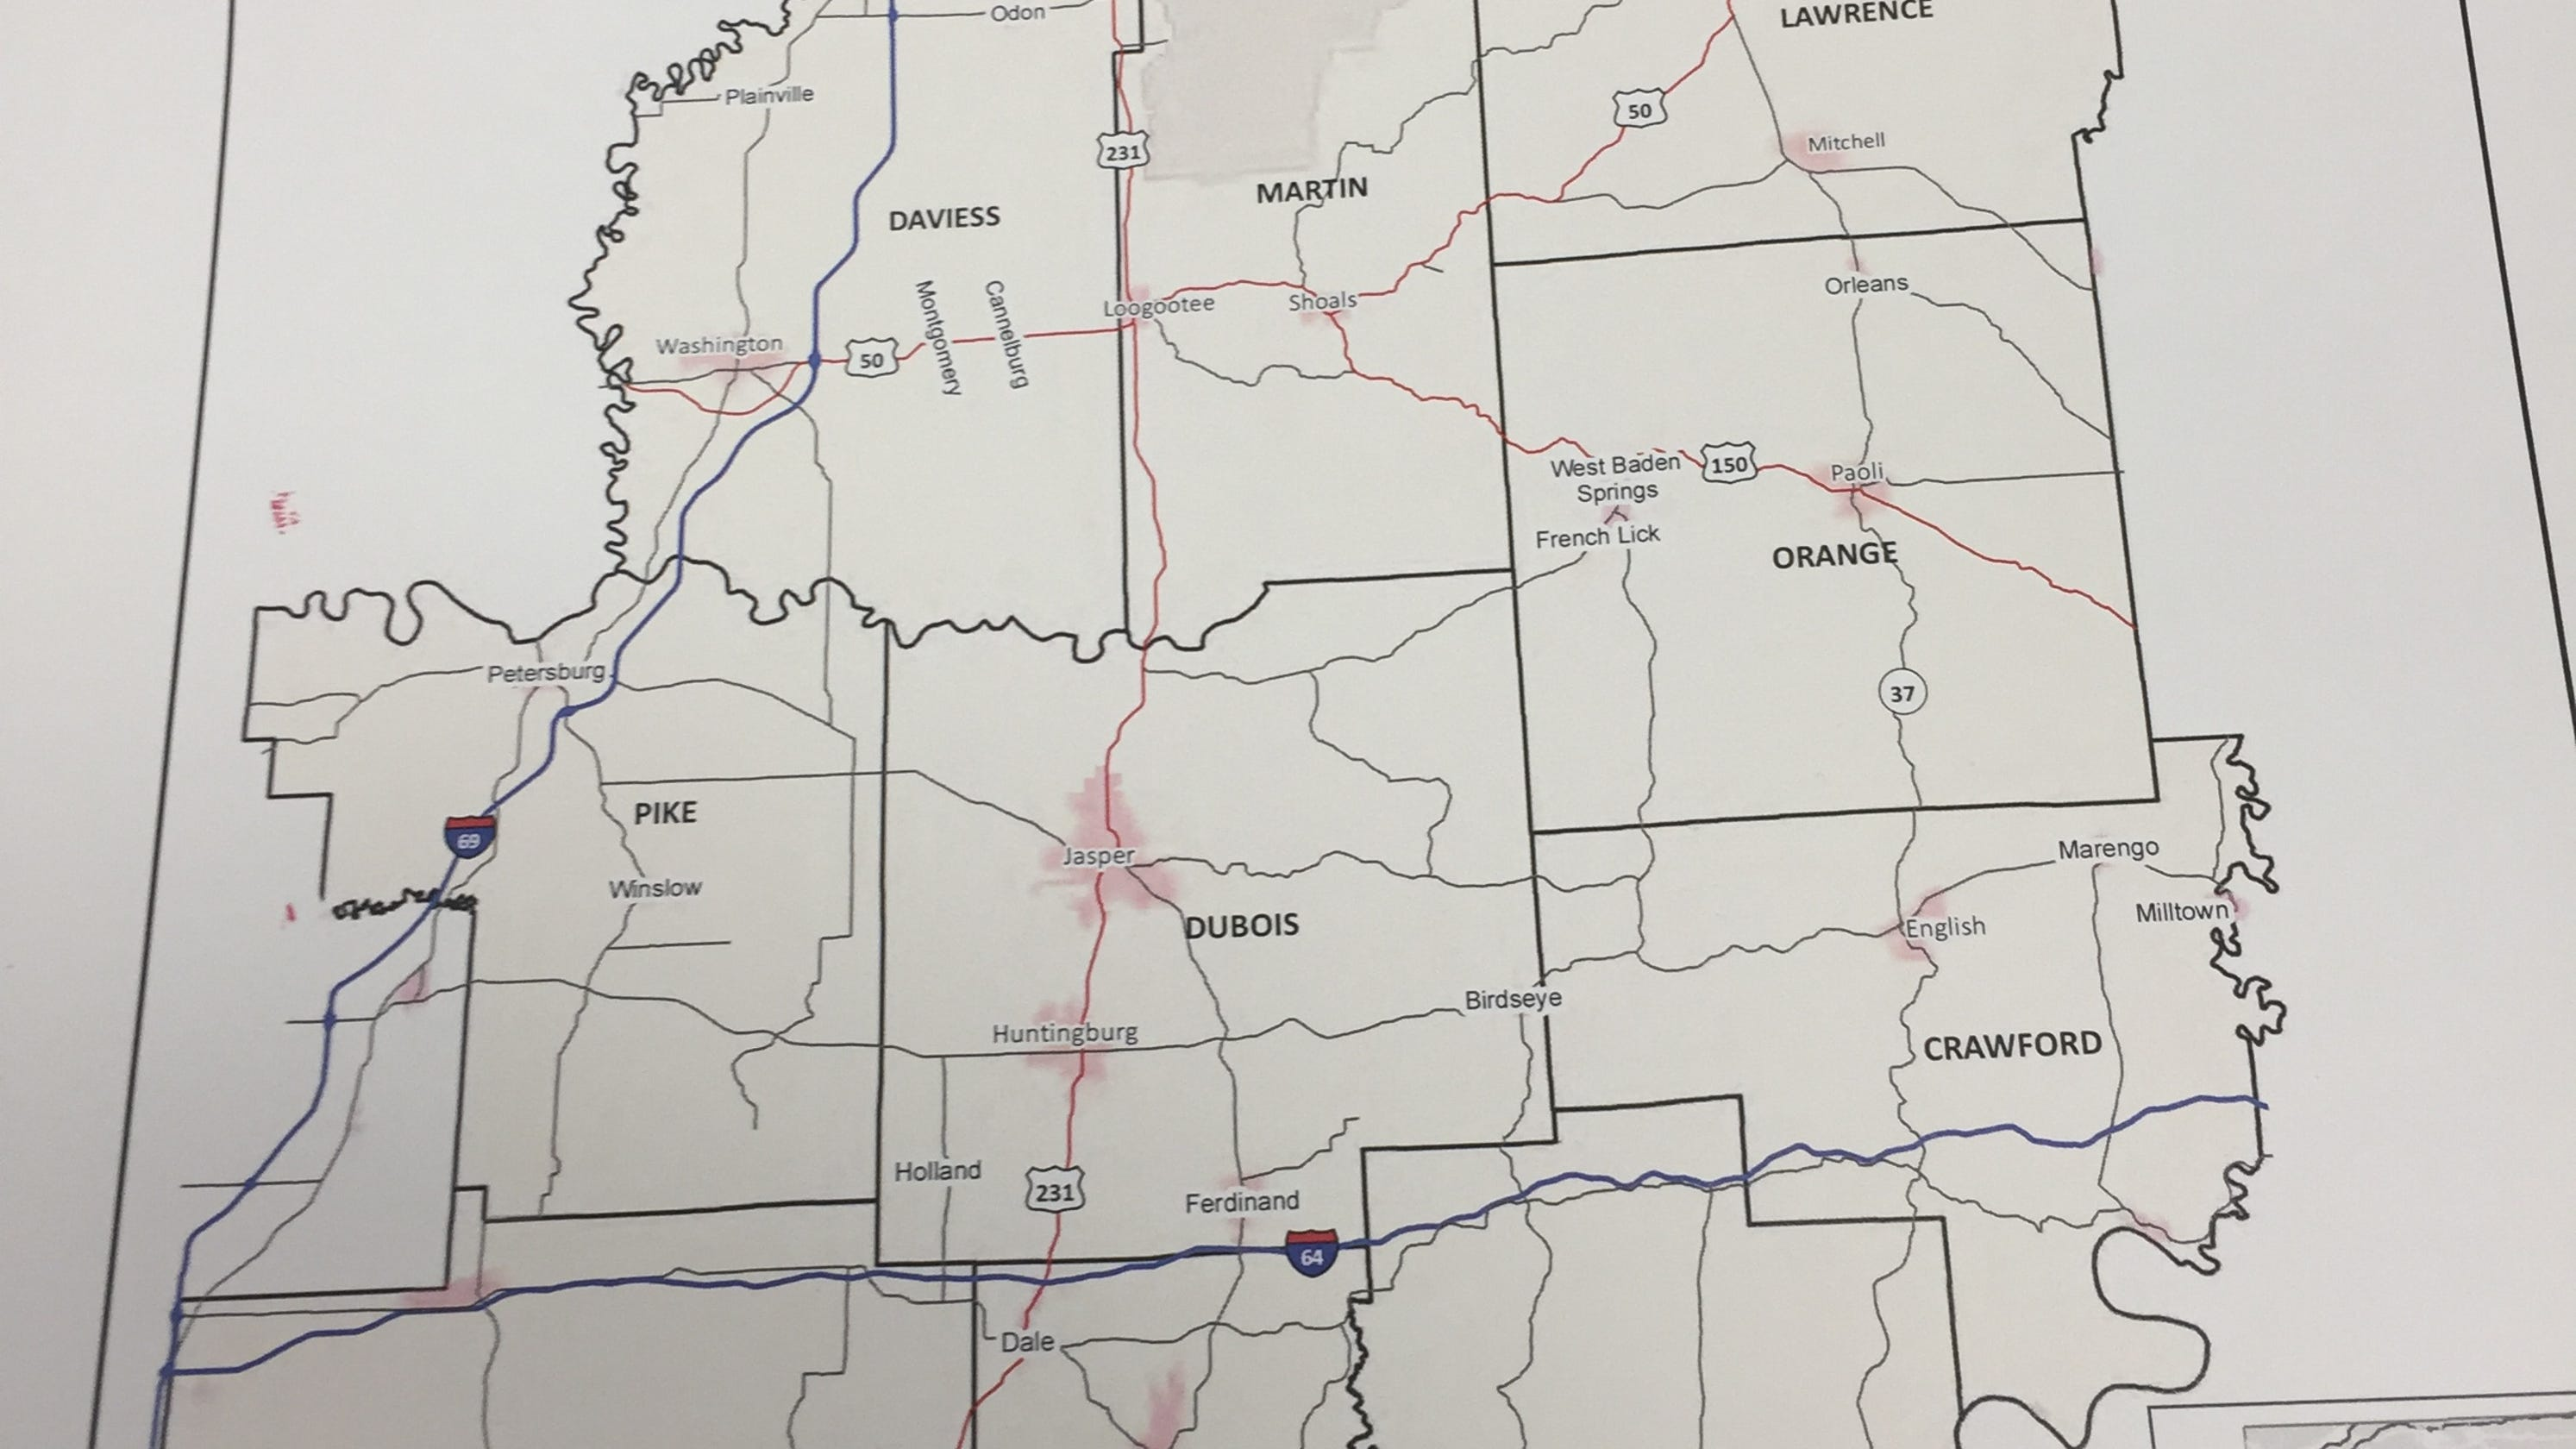 New highway project e for rural SW Indiana on